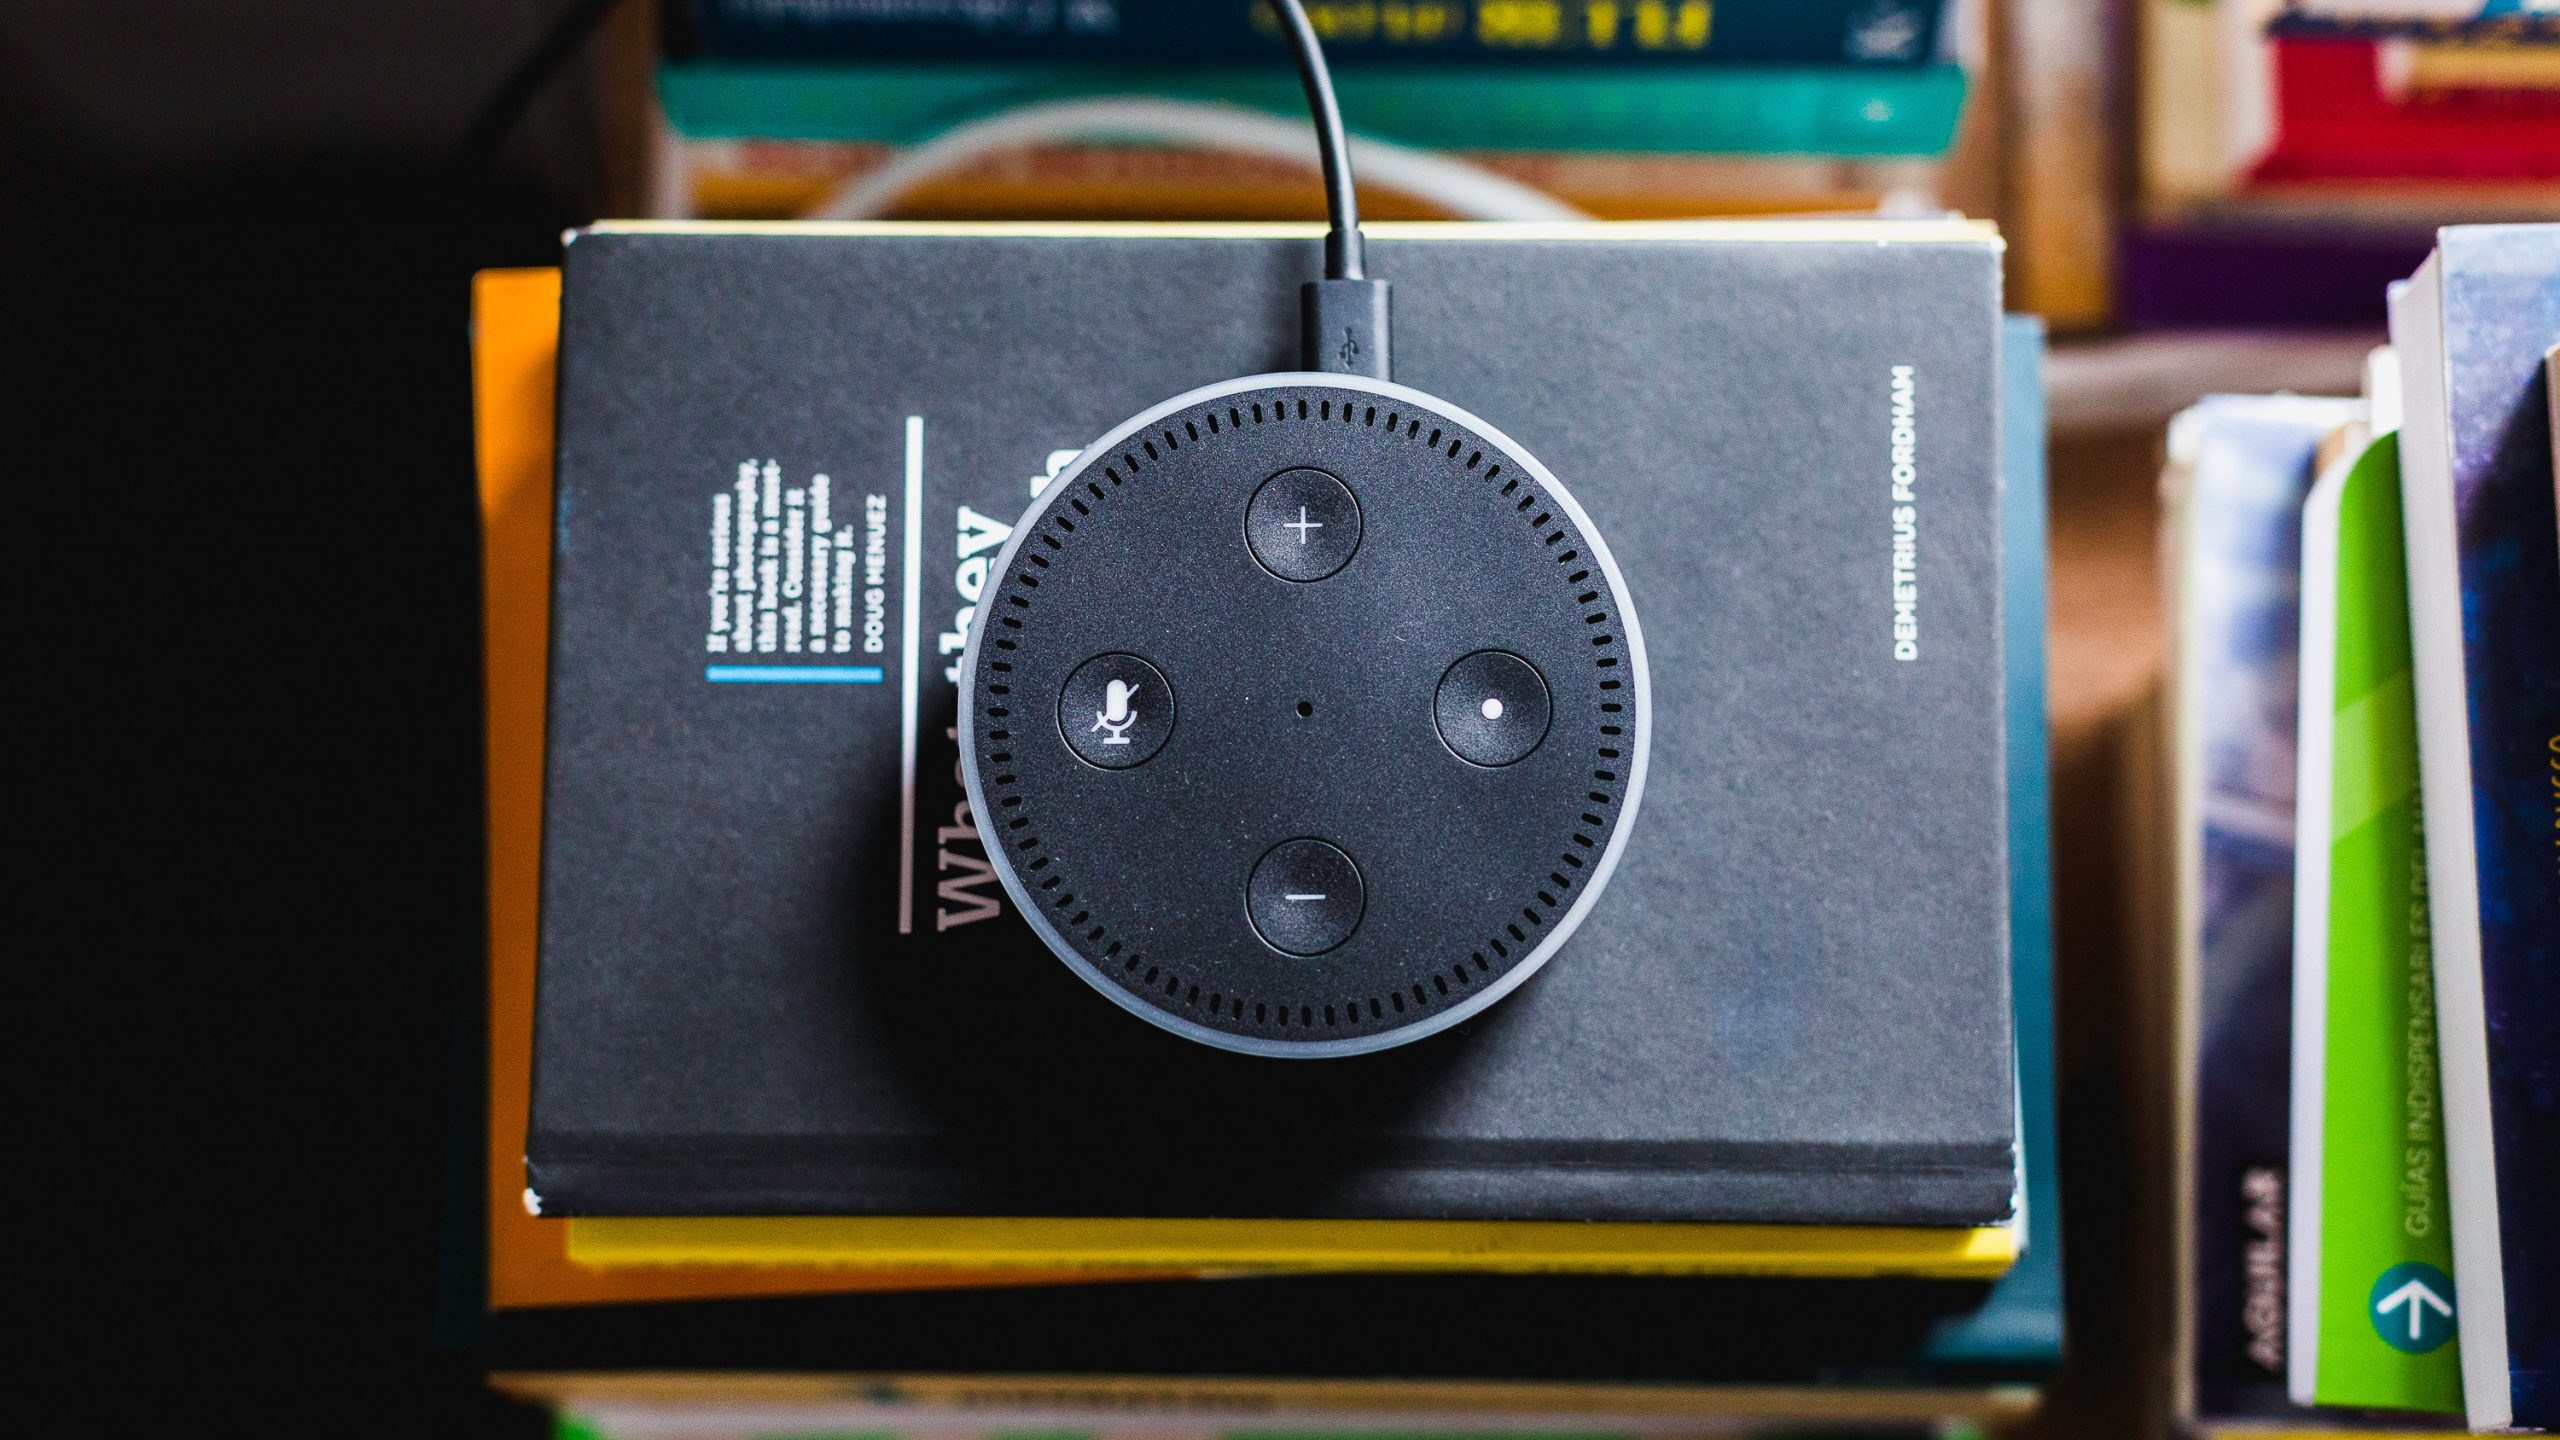 Amazon Echo Dot sitting on a stack of books